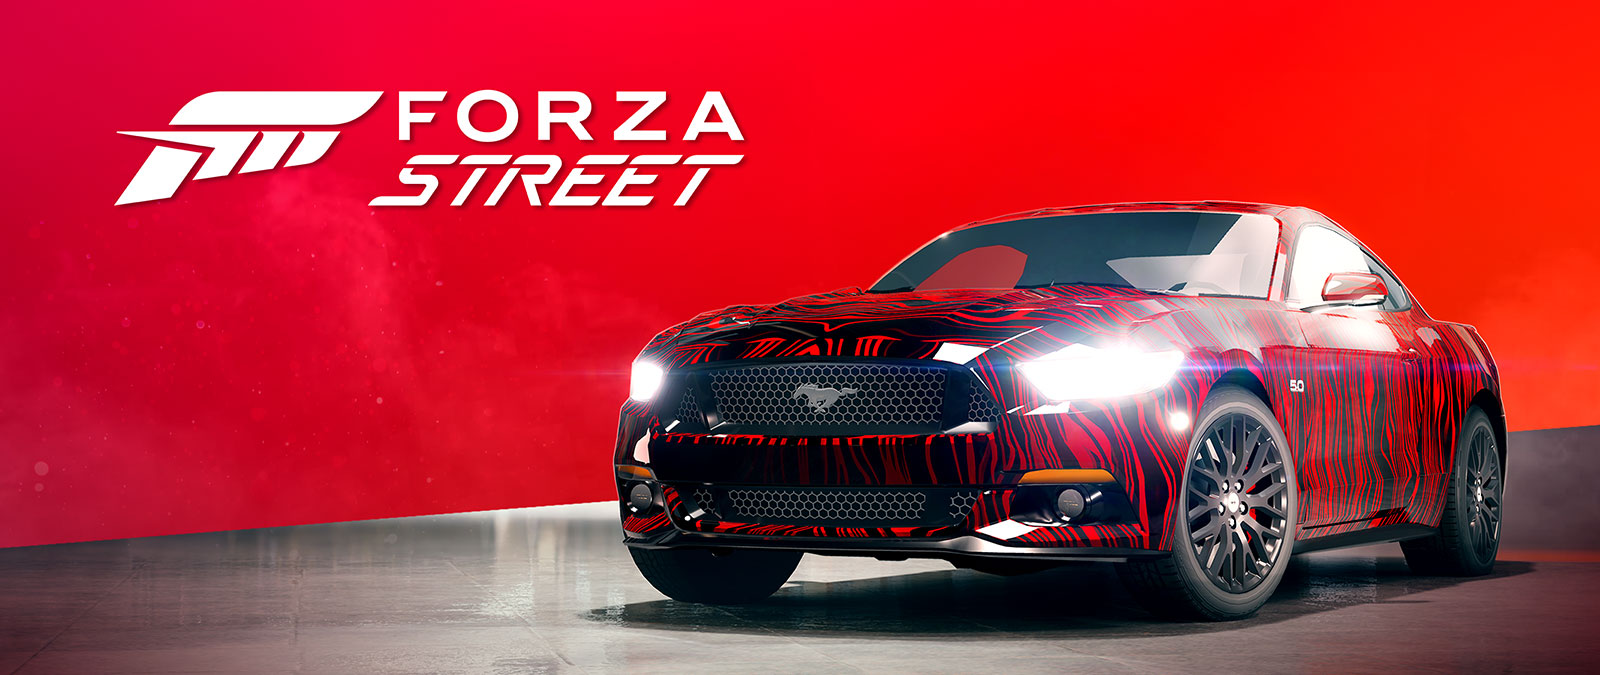 Forza Street-Logo, 2015 Ford Mustang mit Galaxie-Lackierung